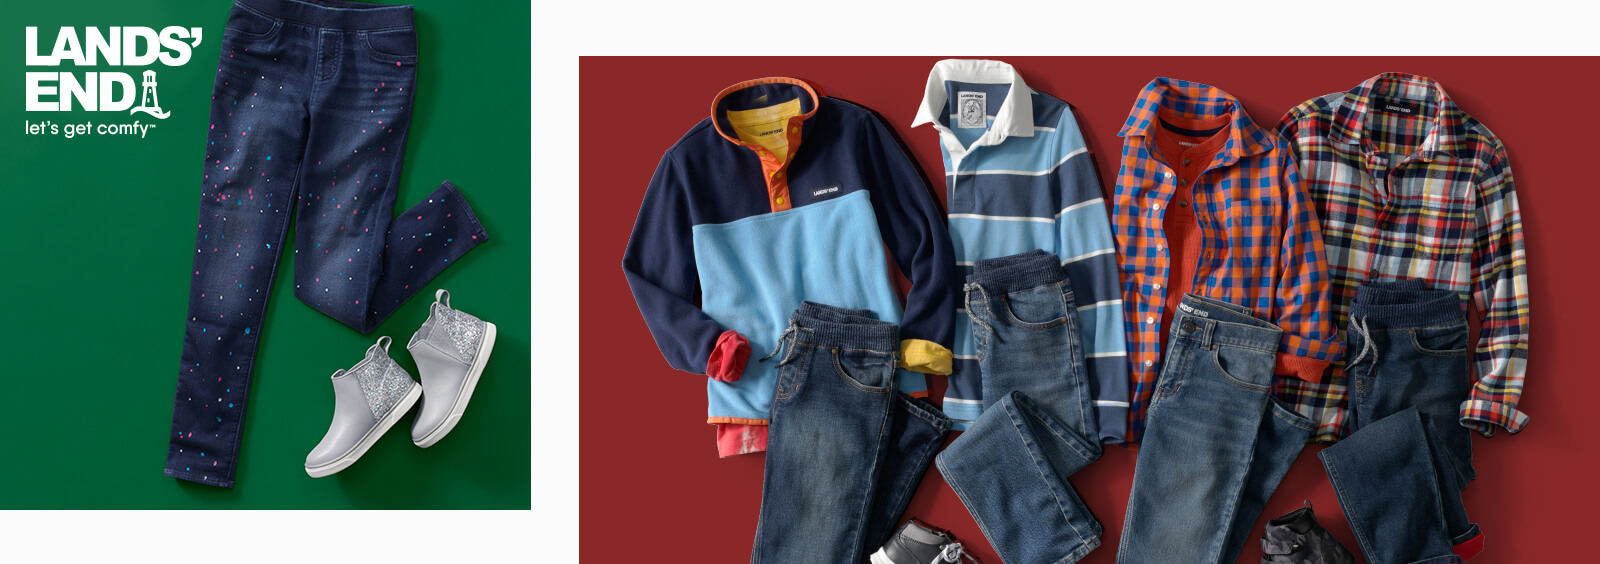 Growing Pains? The Essential Guide to Buying Denim for Your Growing Kids